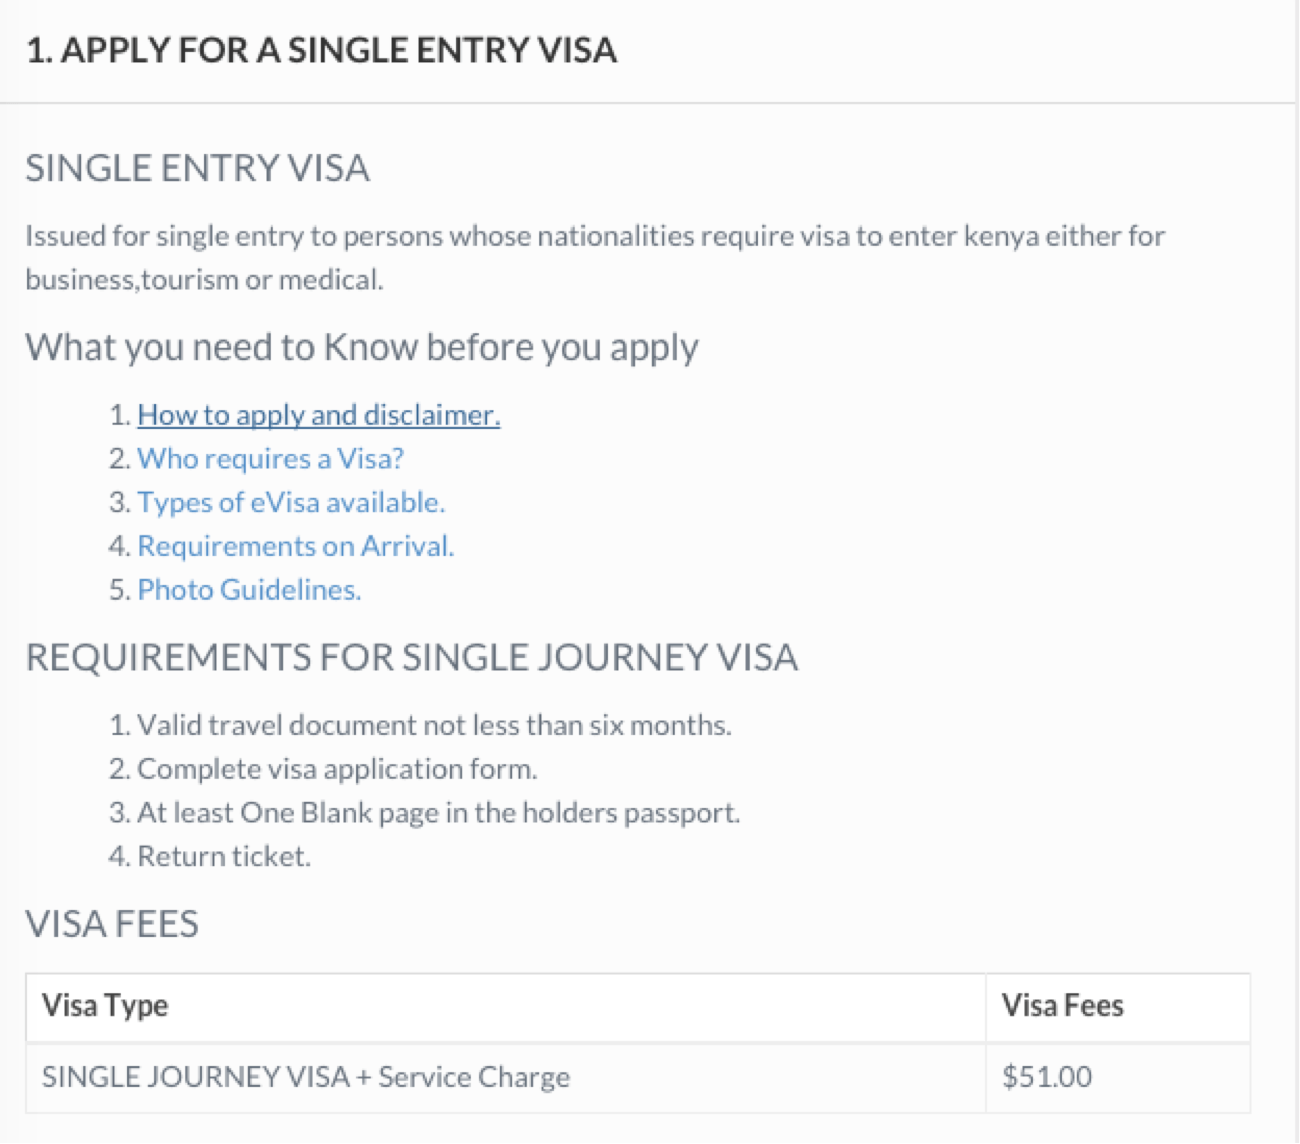 How to Apply for a Kenya Visa Online - Chalo Africa Application Form Visa Hungary on visa application letter, doctor physical examination form, passport renewal form, visa ds-160 form sample, work permit form, visa invitation form, green card form, tax form, invitation letter form, travel itinerary form, nomination form, visa documents folder, visa passport, job search form, insurance form,